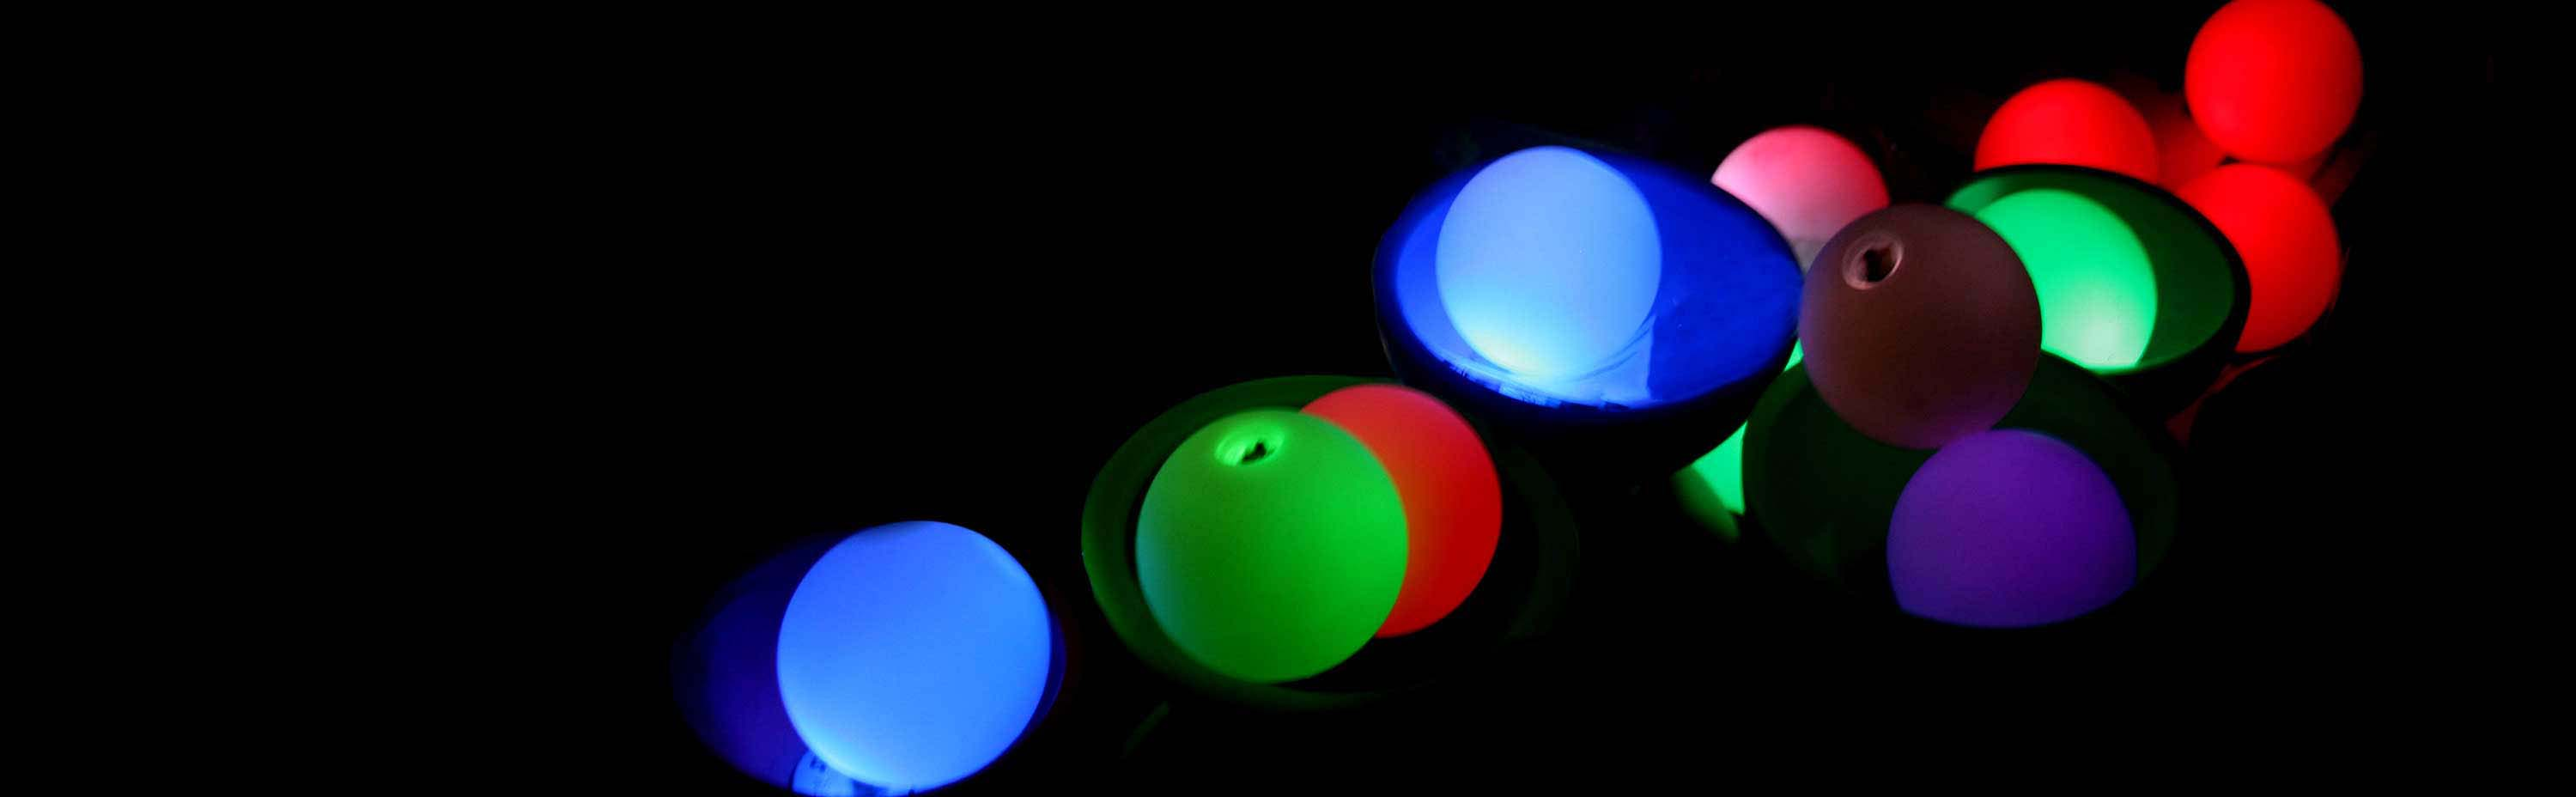 LED Glow Contact Juggling Balls